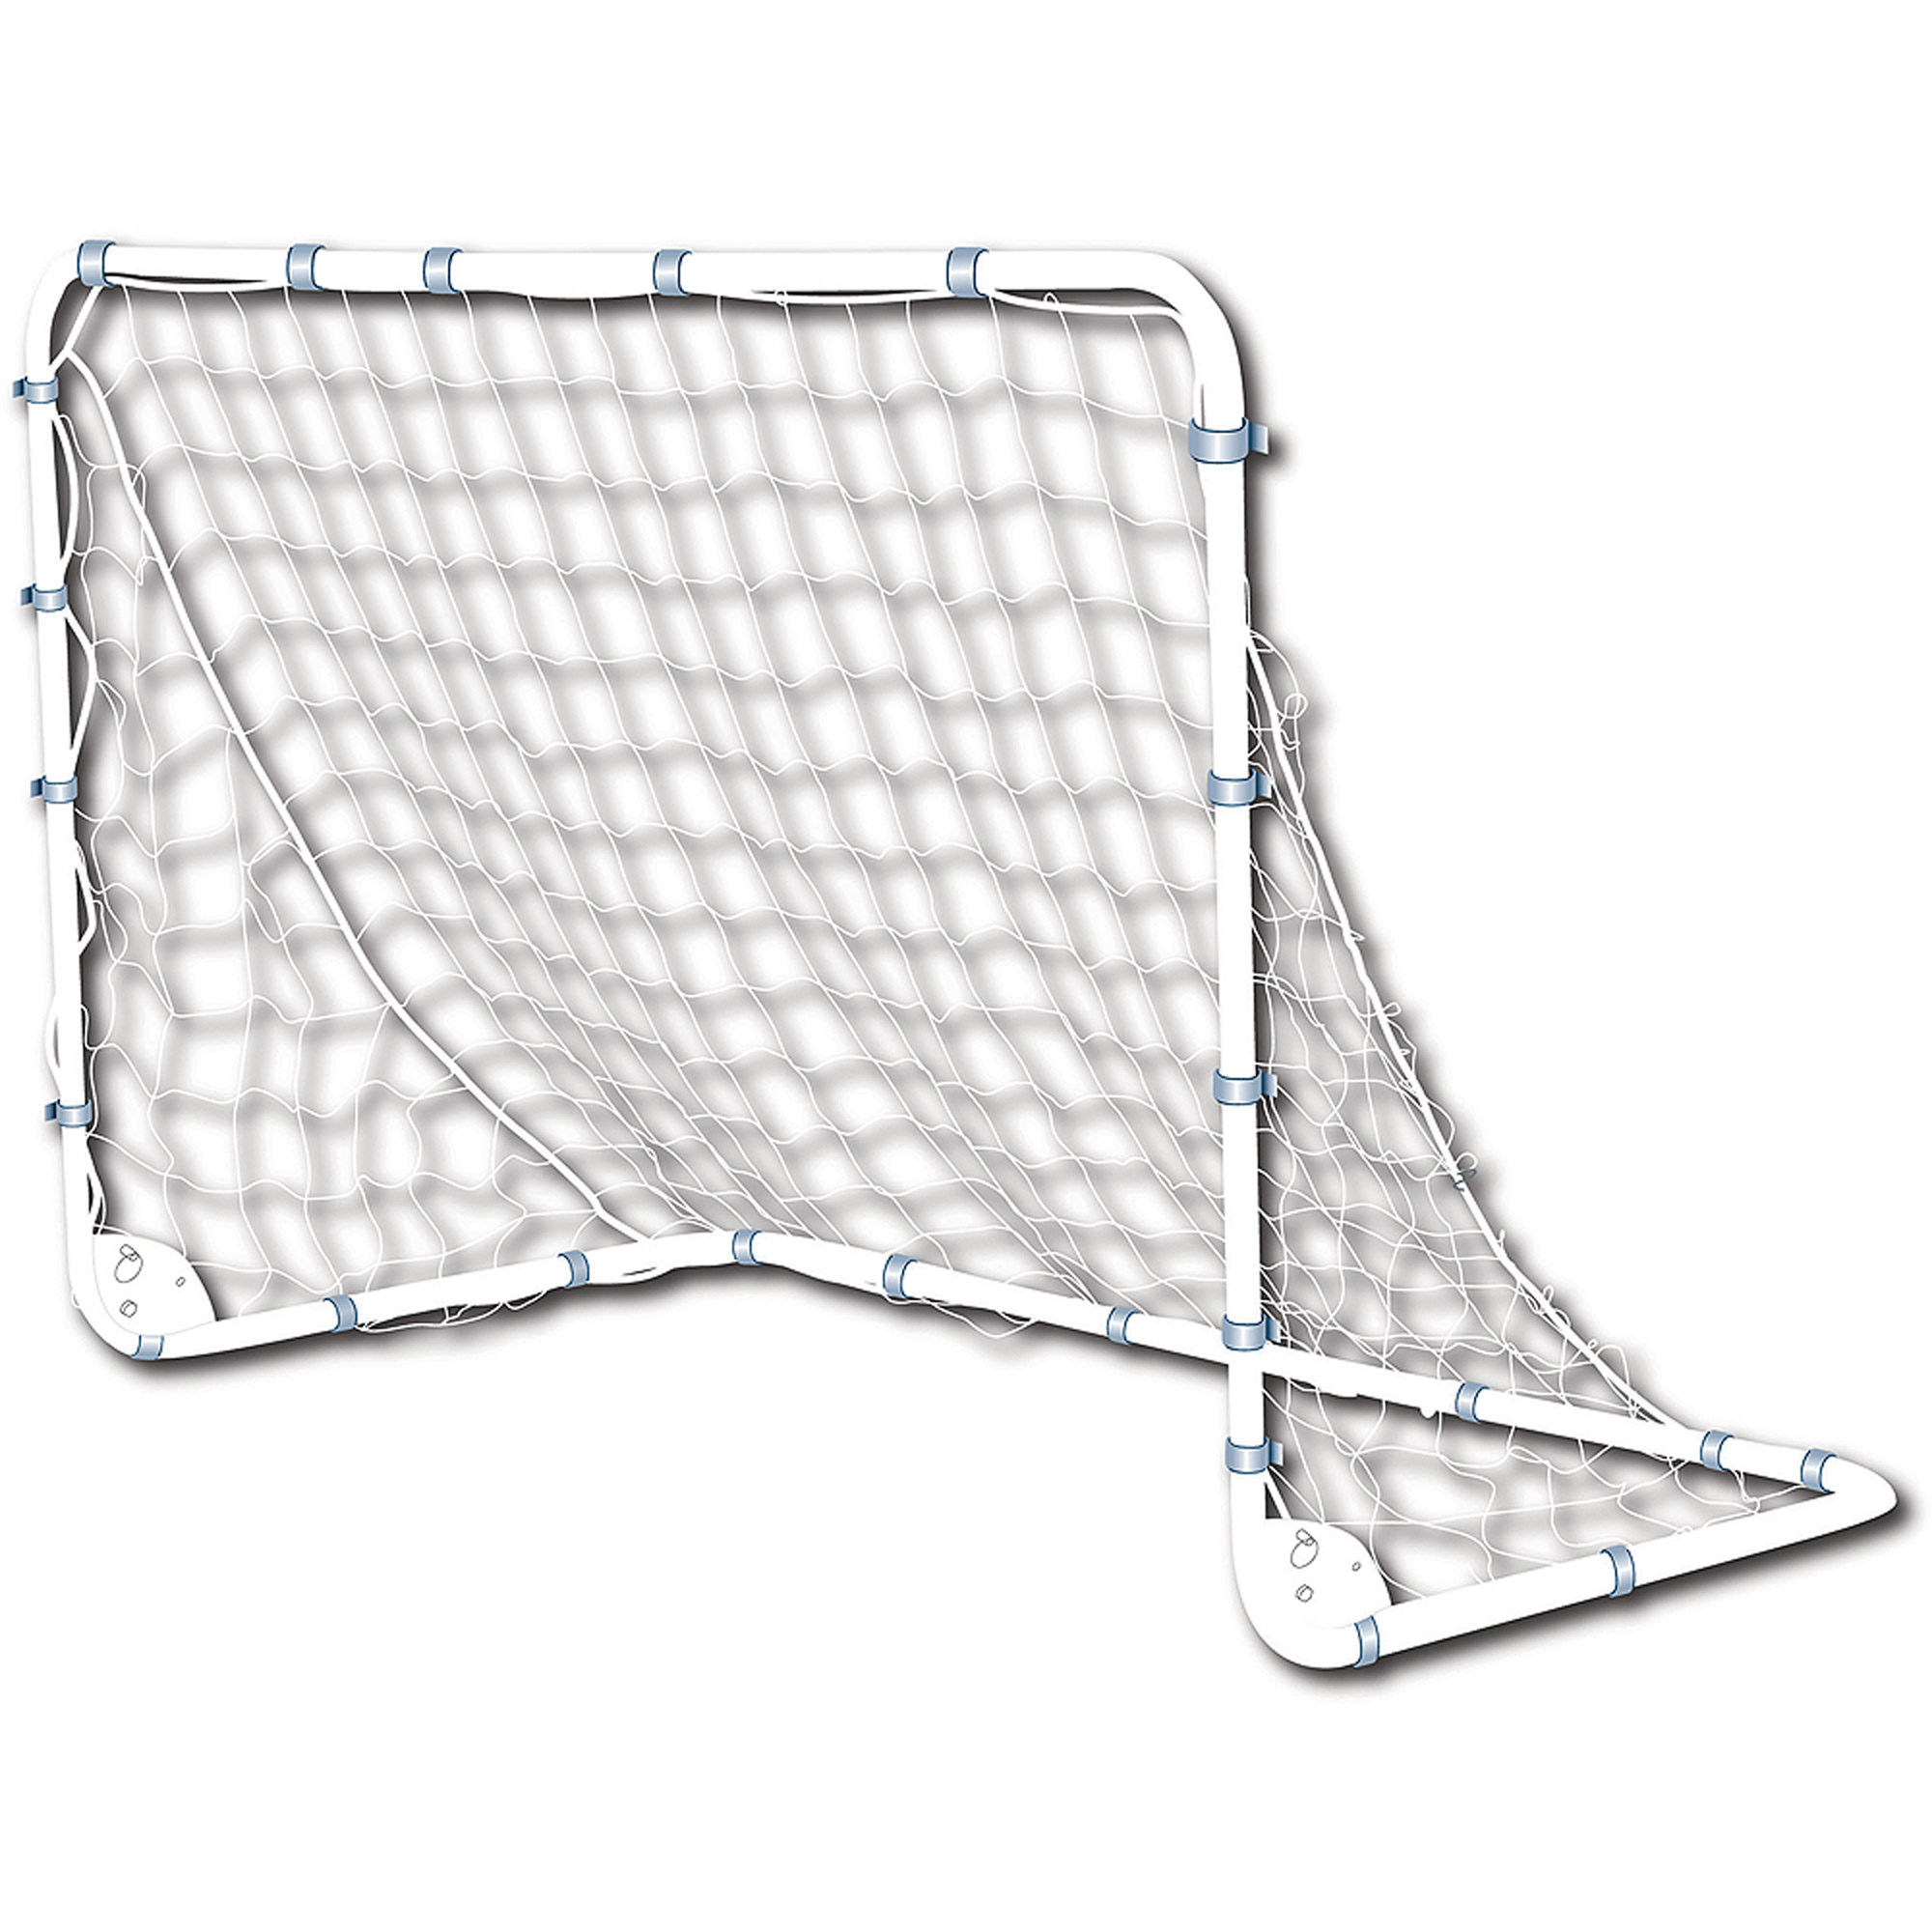 Franklin Sports 6' x 3' Folding Steel Soccer Goal